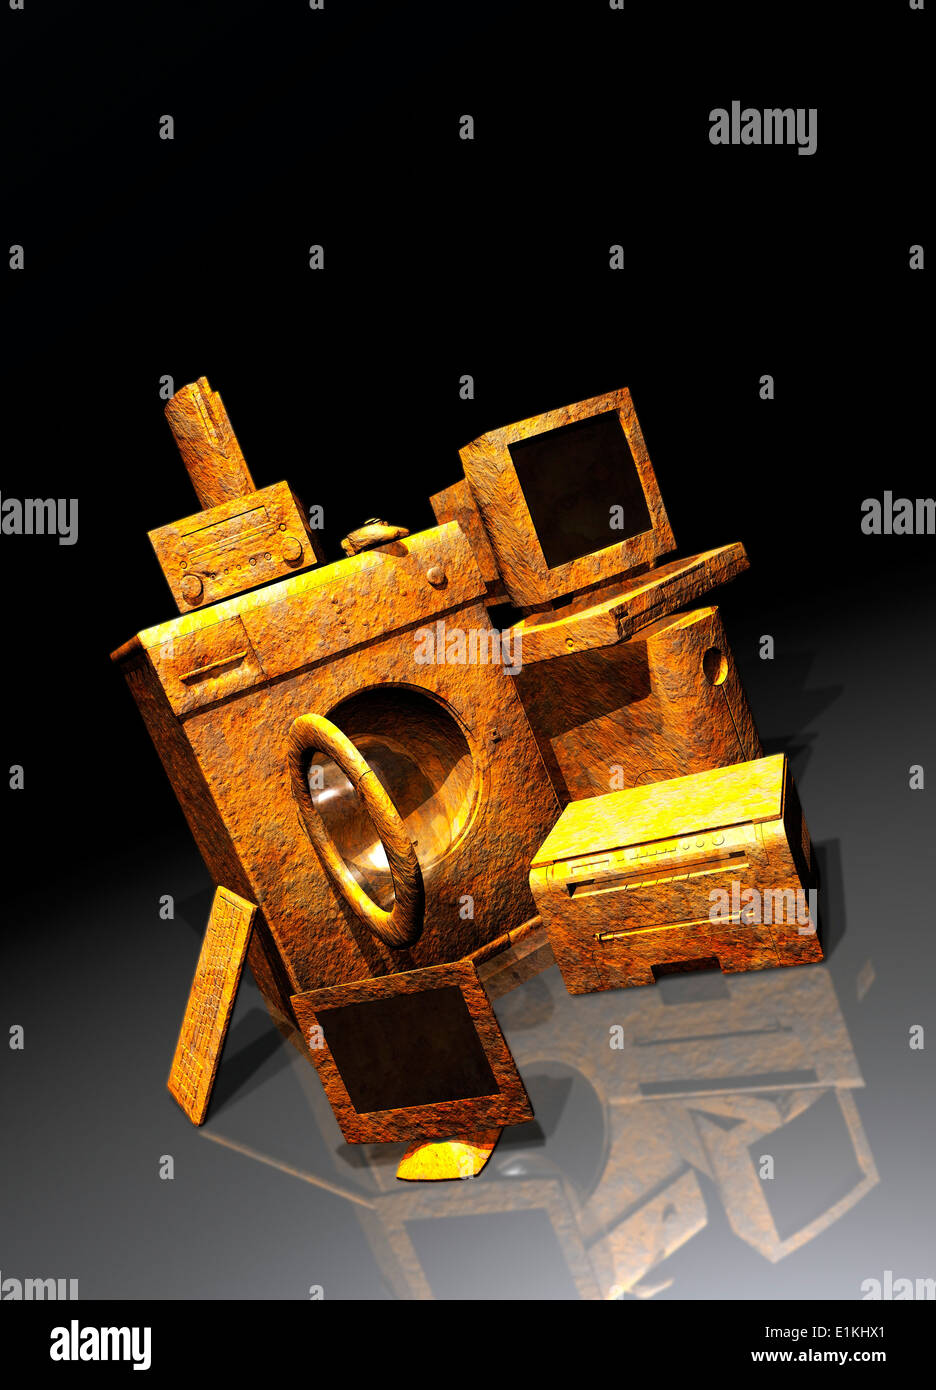 Artwork of household appliances obsolescence concept. - Stock Image